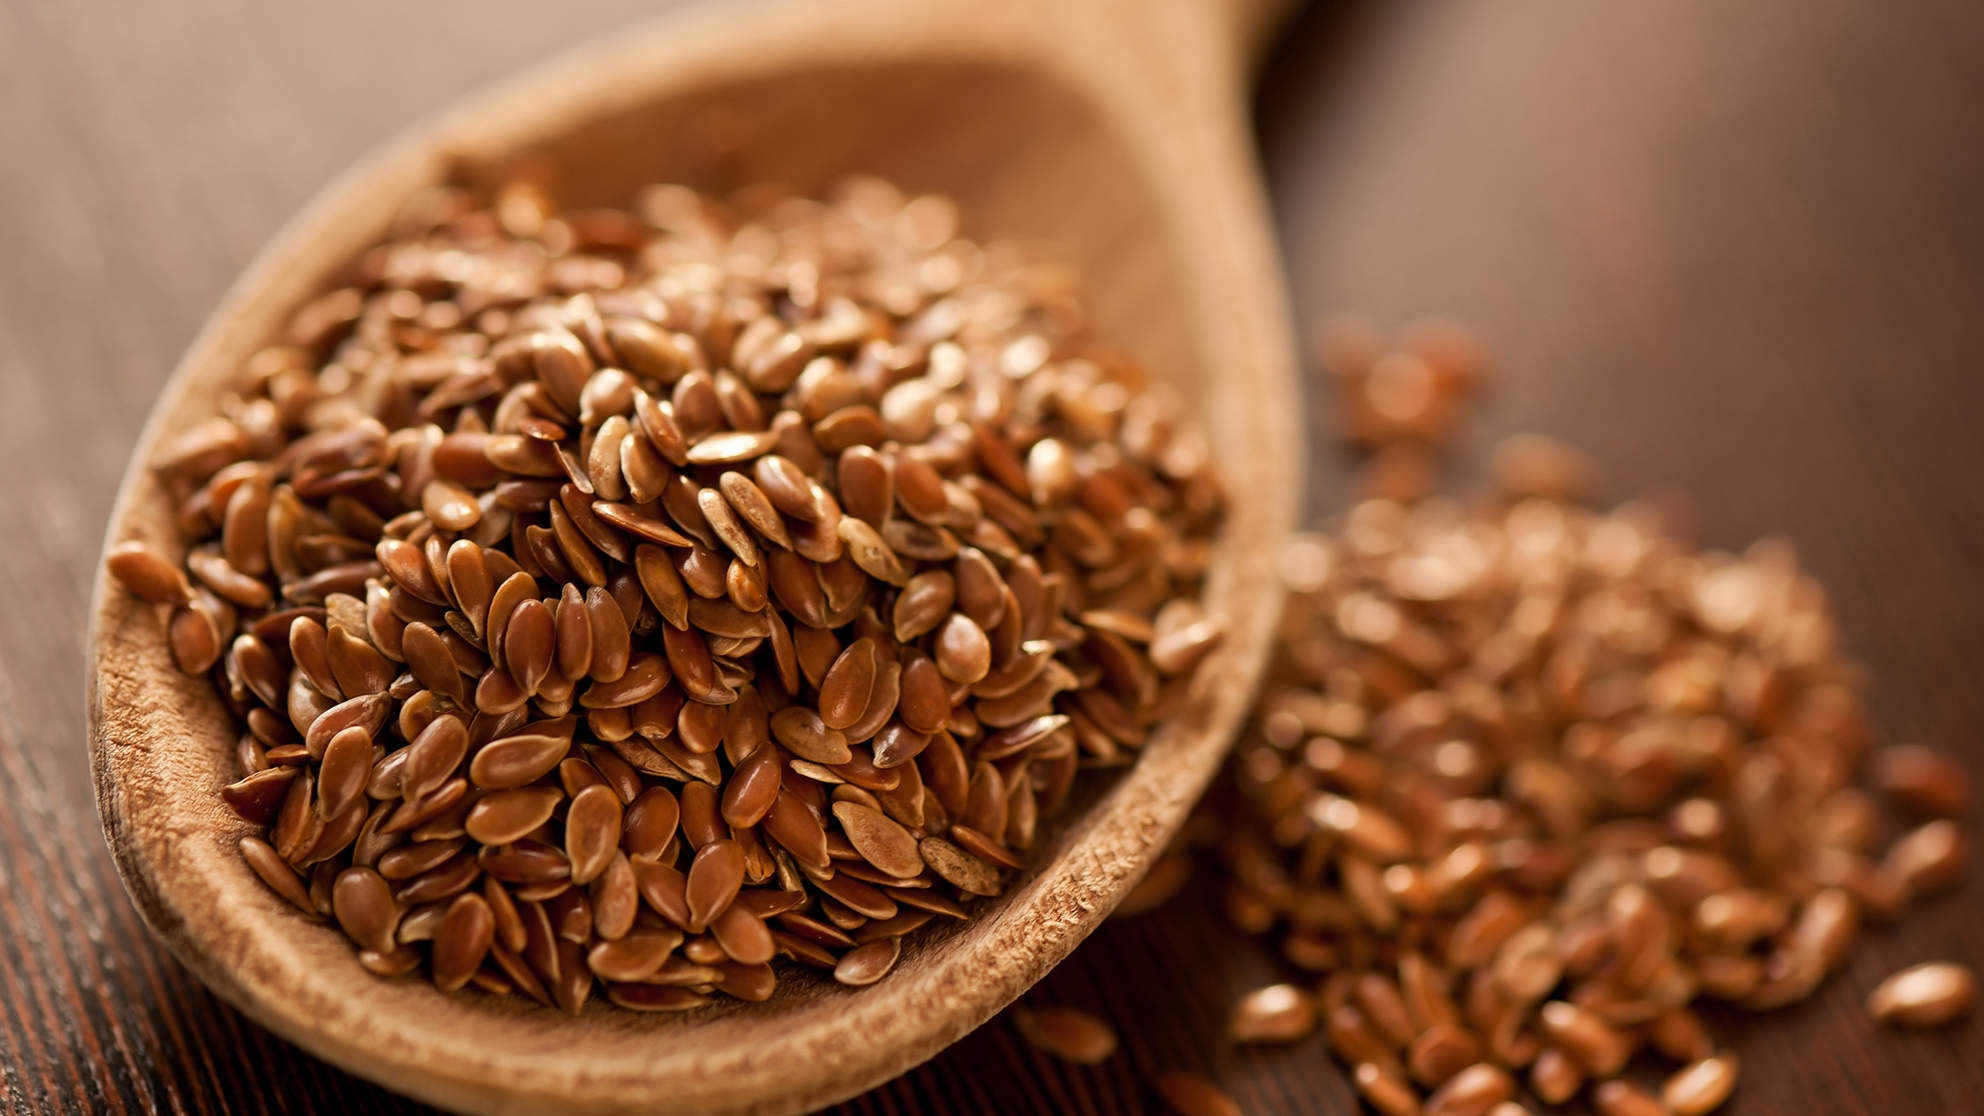 You're Basically Wasting Money on Flax Seeds If You Don't Take This Extra Step